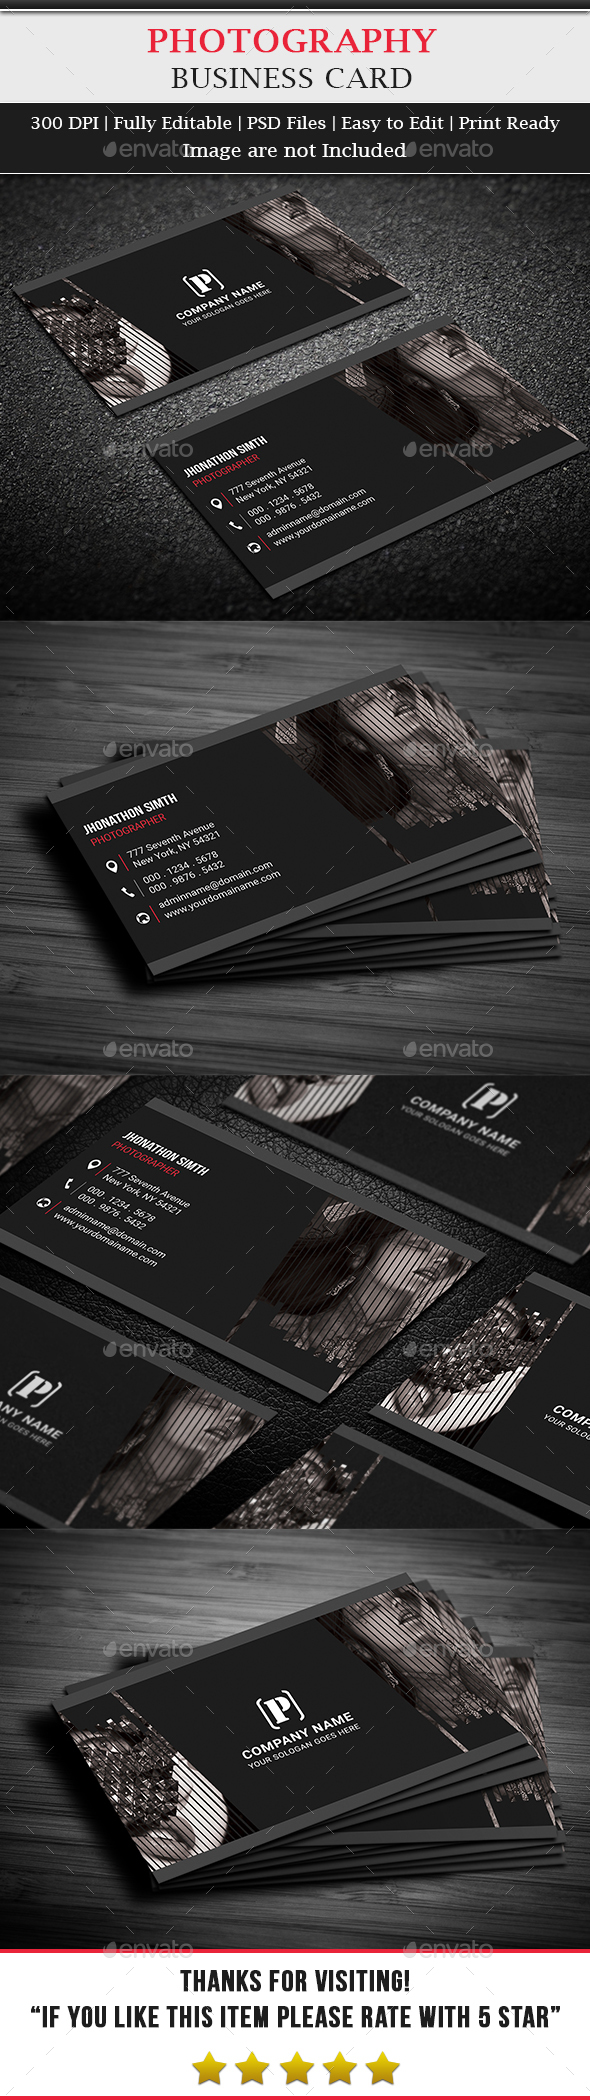 Fashion Photography Business Card - Business Cards Print Templates